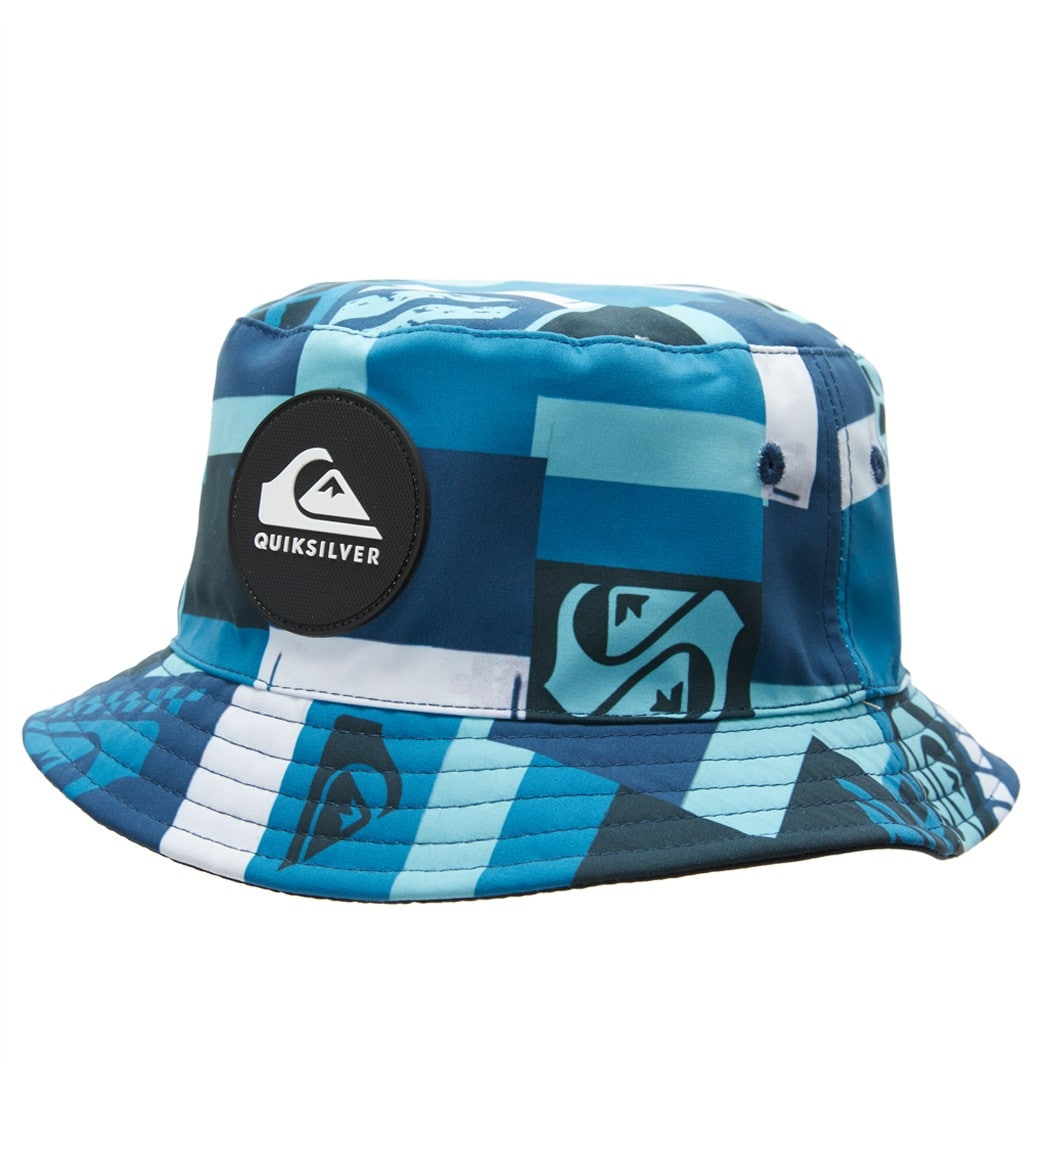 Quiksilver Boys  Lurkerize Bucket Hat at SwimOutlet.com 9cd83356973a